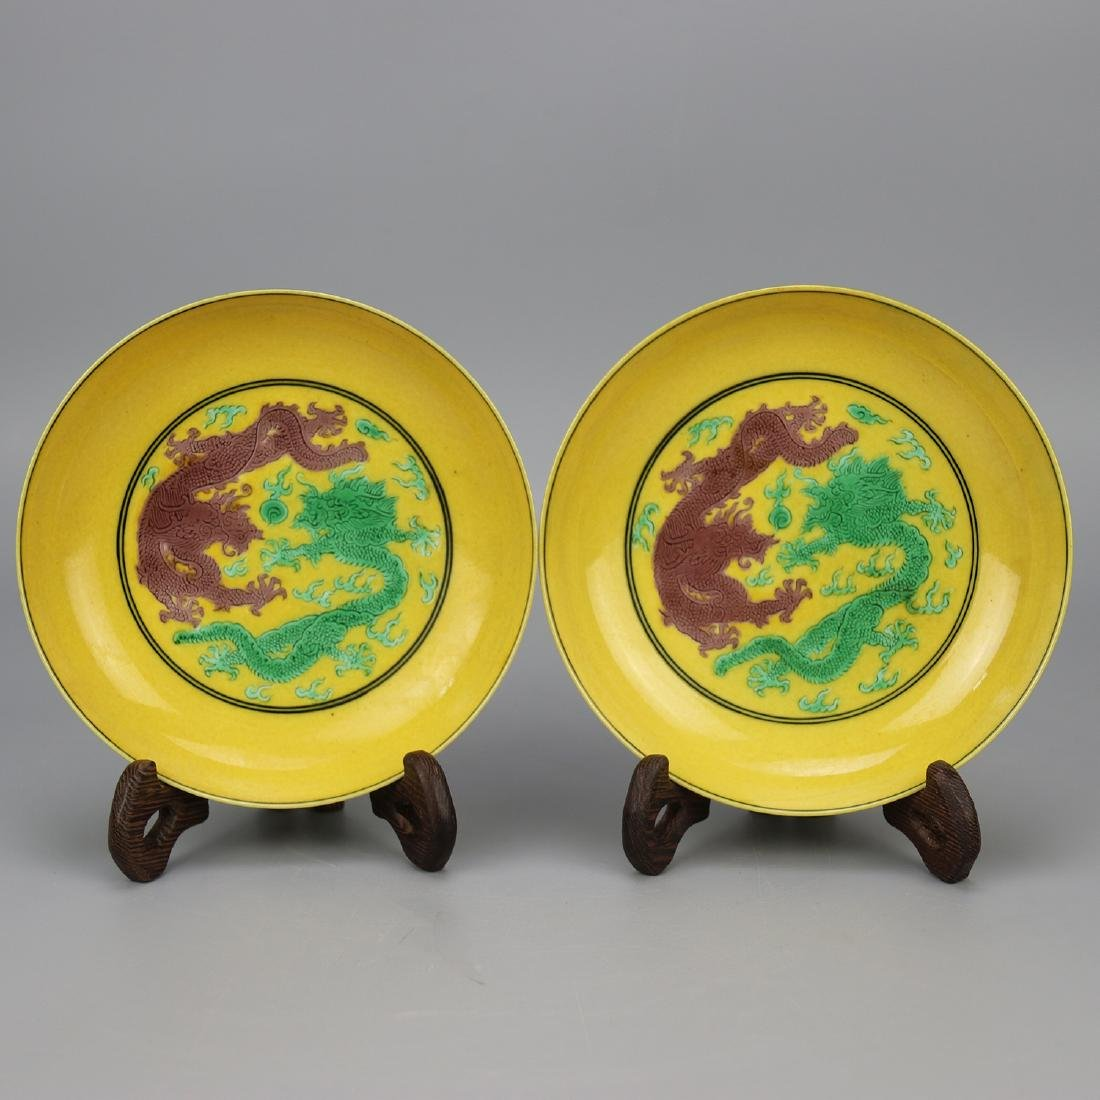 Pair of Chinese Yellows Dragon Porcelain Charger